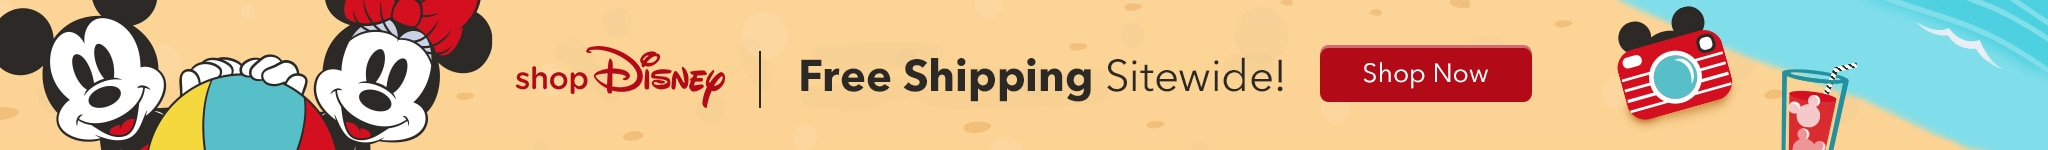 ShopDisney: Free Shipping Sitewide! Shop Now